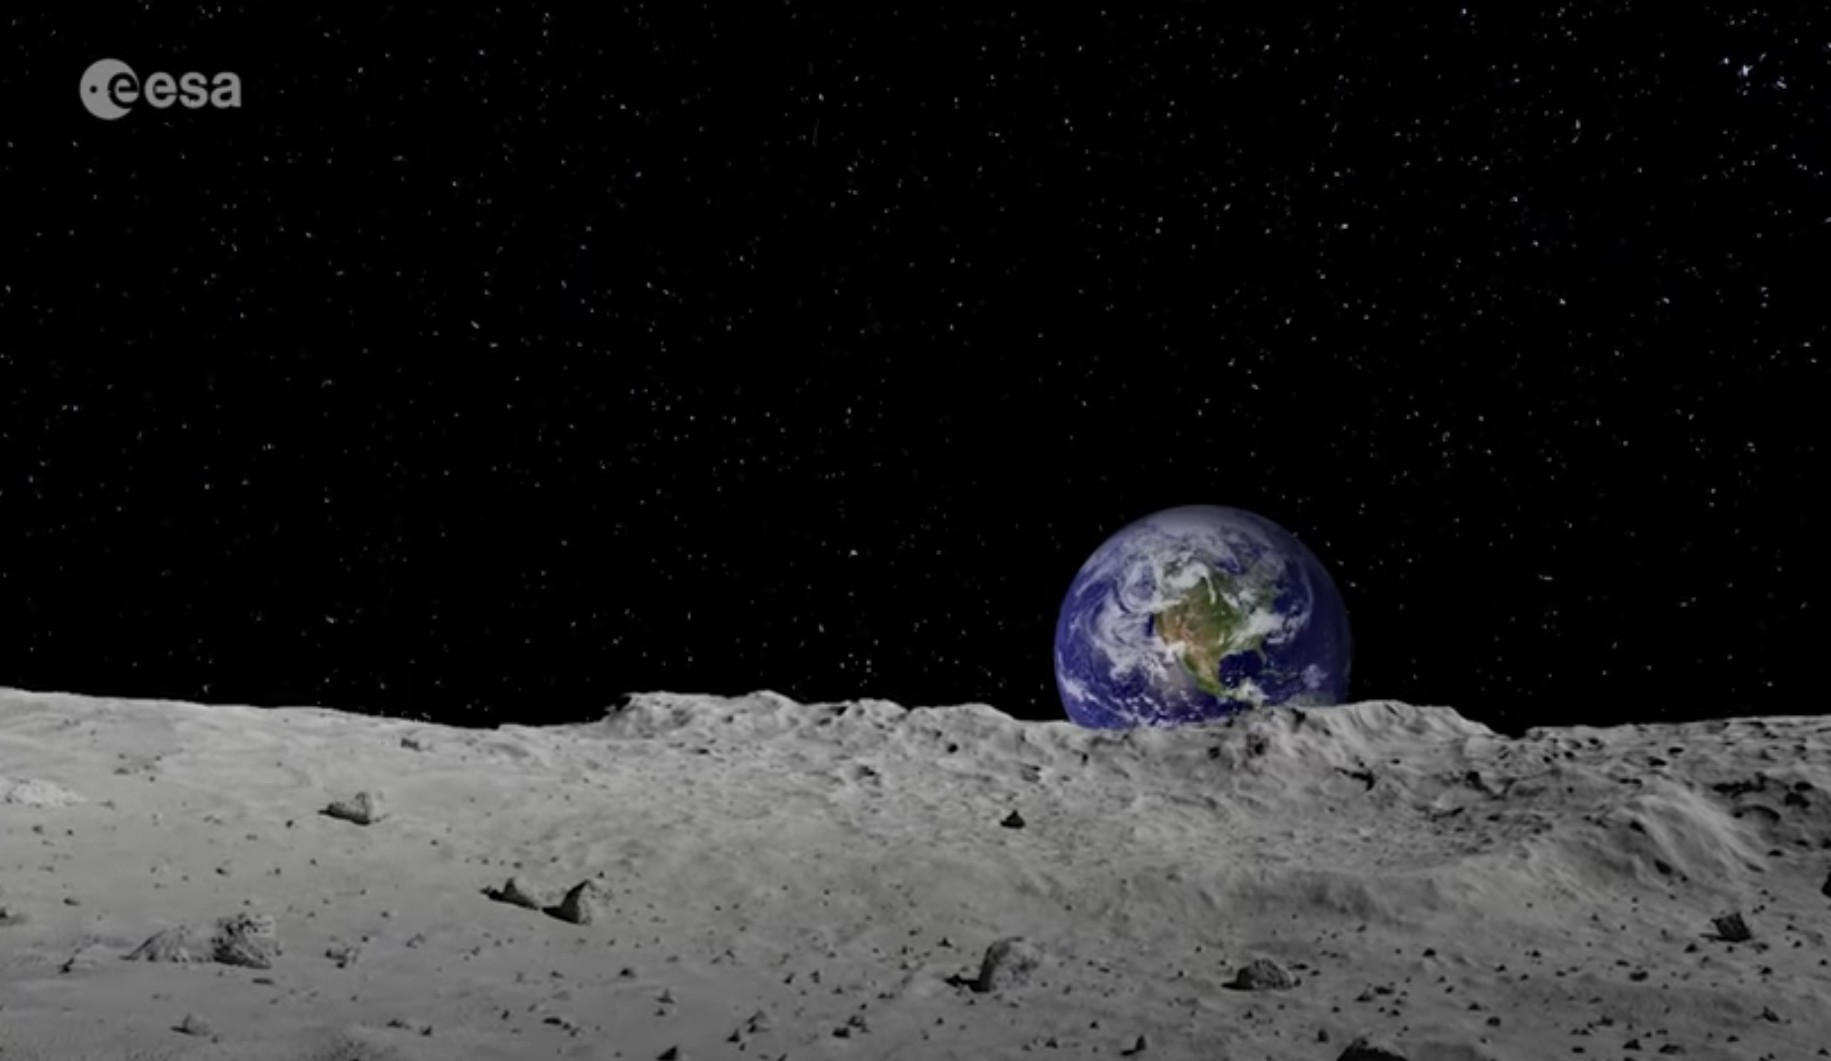 Facts you should know about outer space • Earth.com - Earth.com